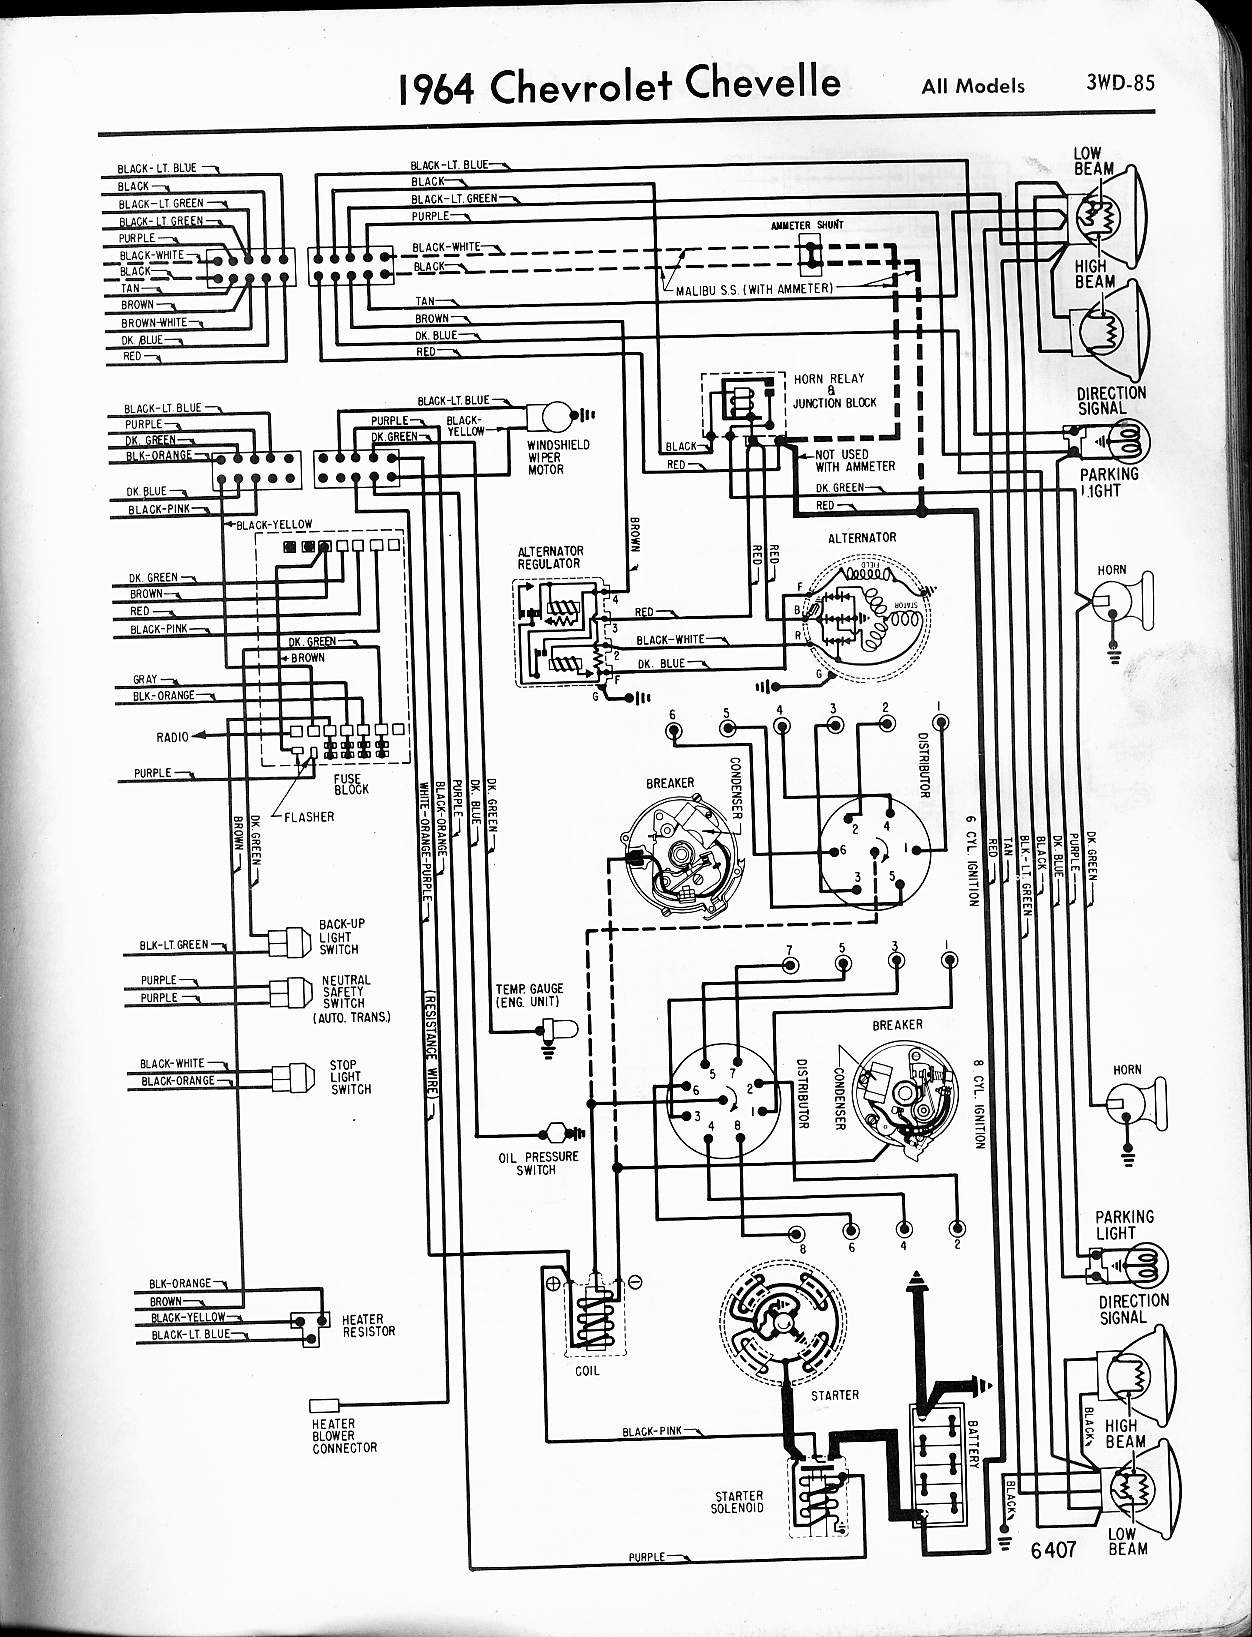 1970 Chevy Truck Wiring Diagram Chevy Silverado 1966 Mustang Ignition Wiring Diagram 2003 Chevy Of 1970 Chevy Truck Wiring Diagram